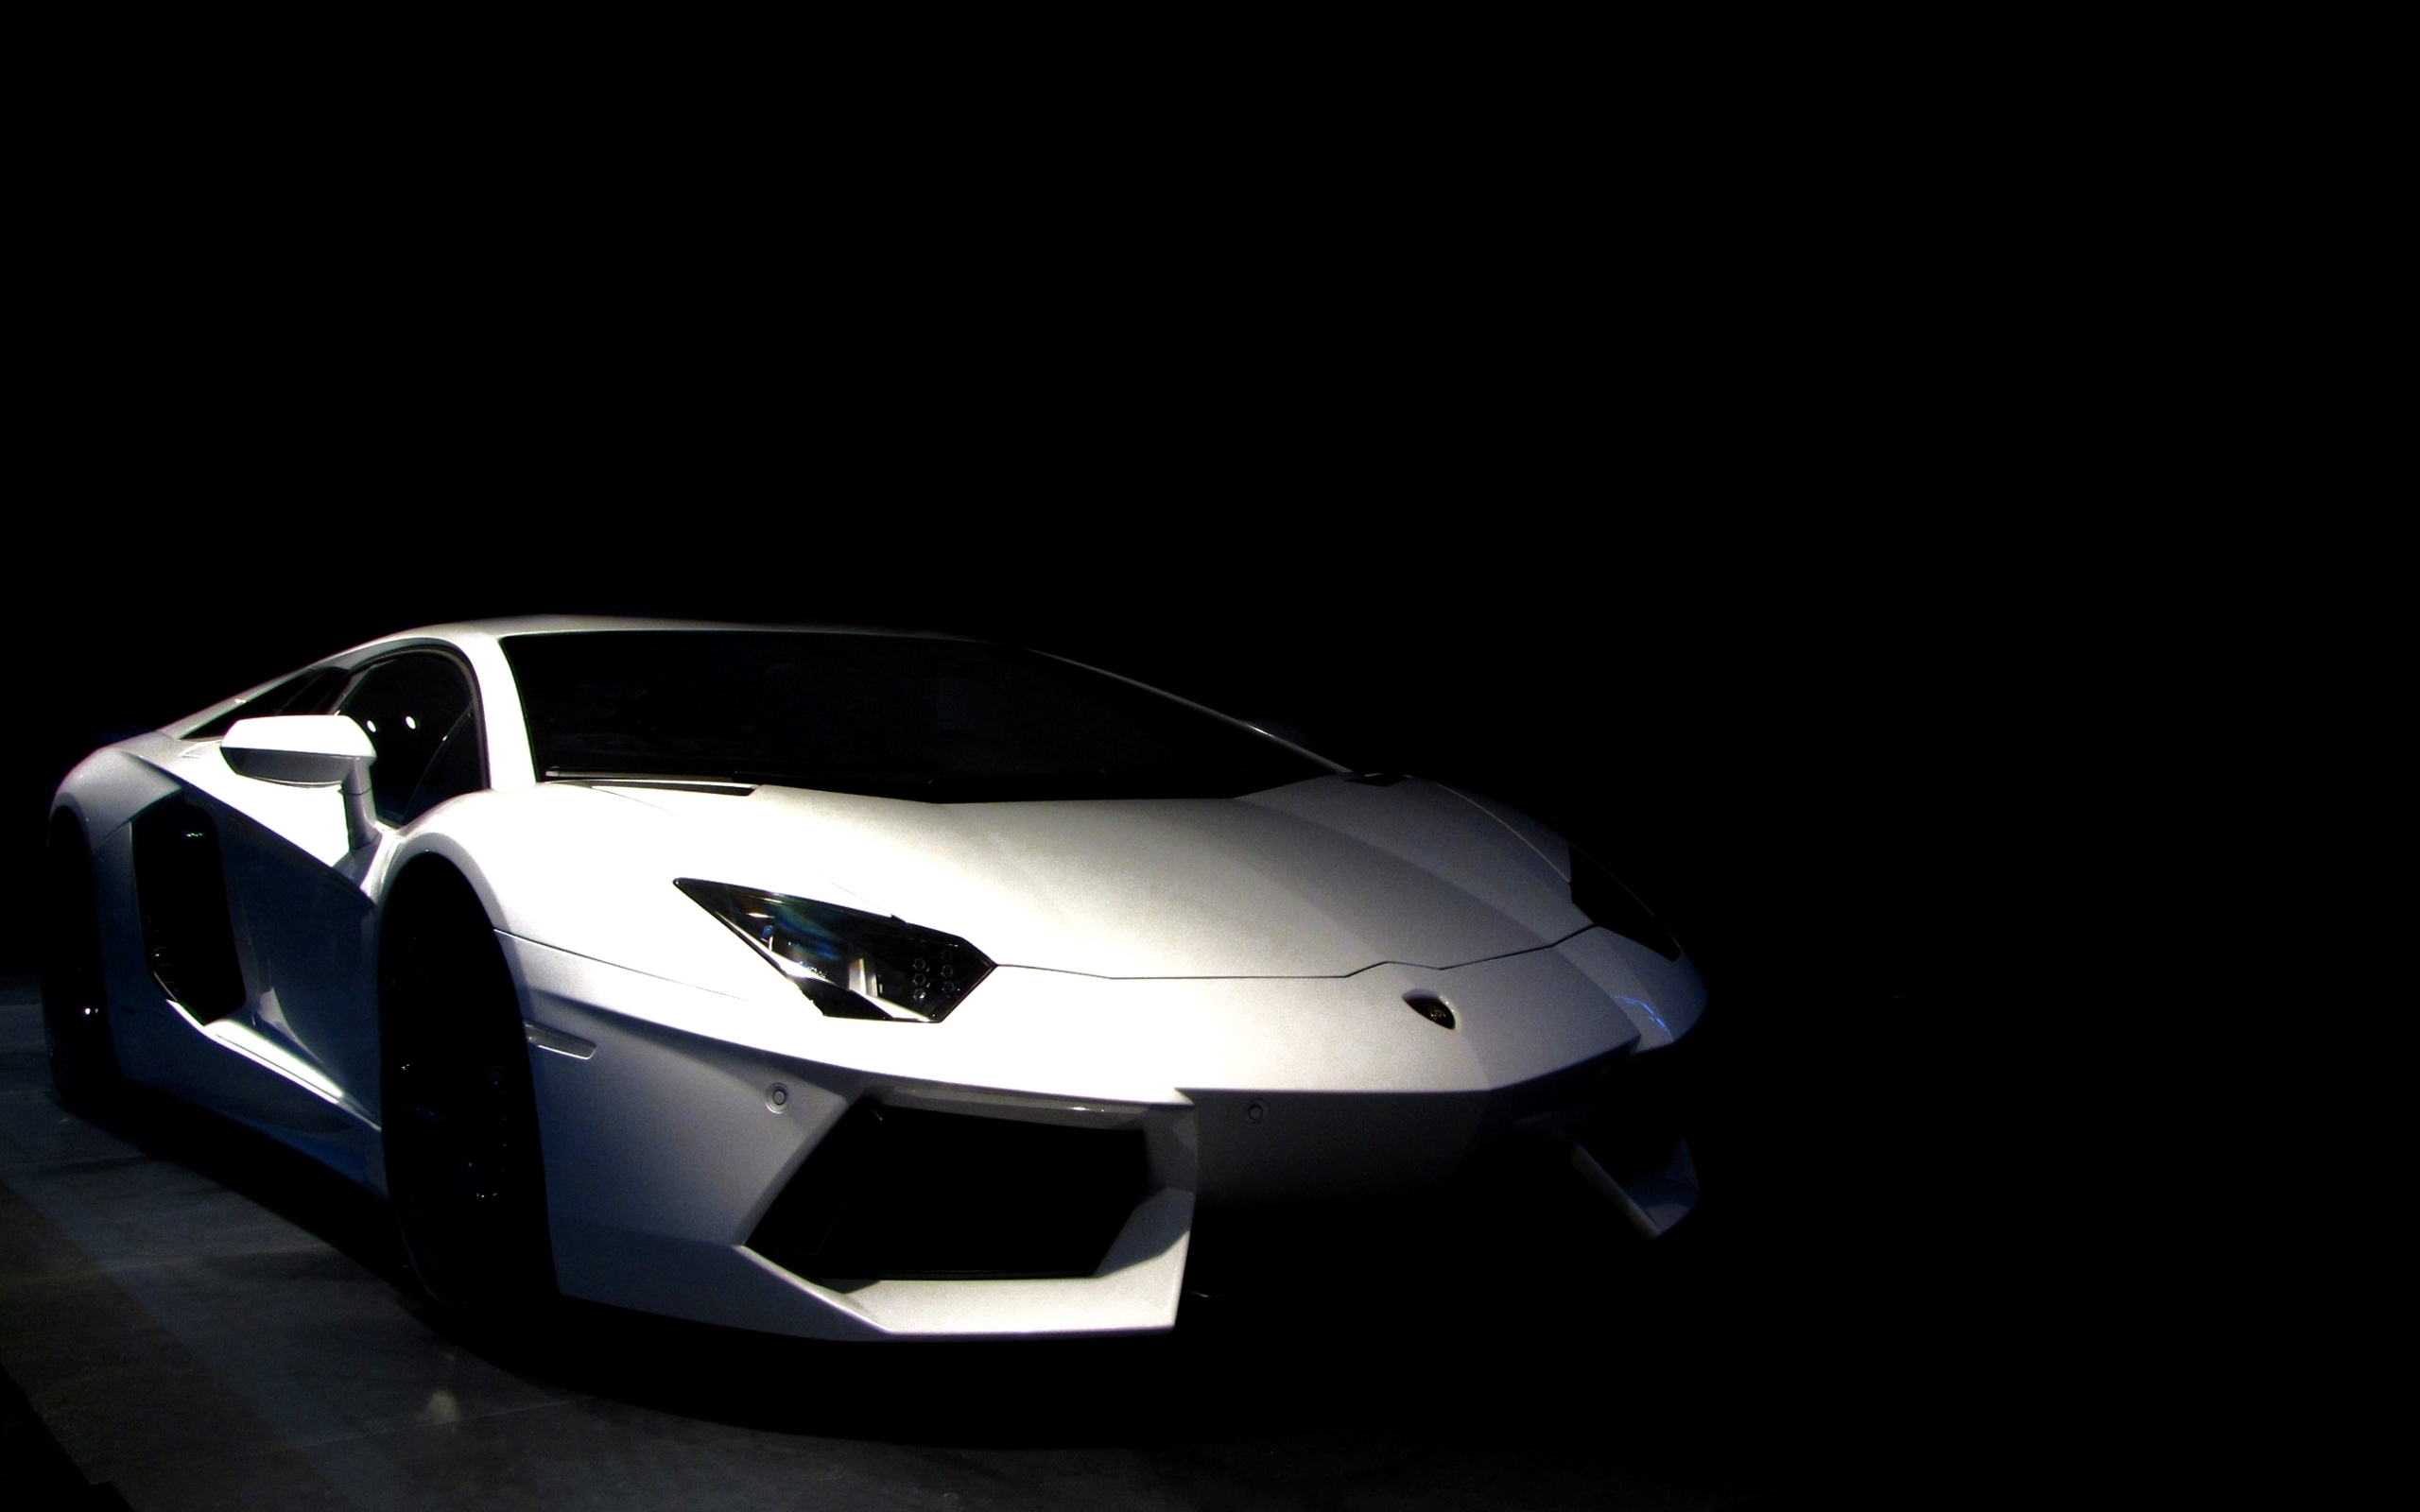 High Quality Lamborghini Aventador Wallpapers | Full HD Pictures